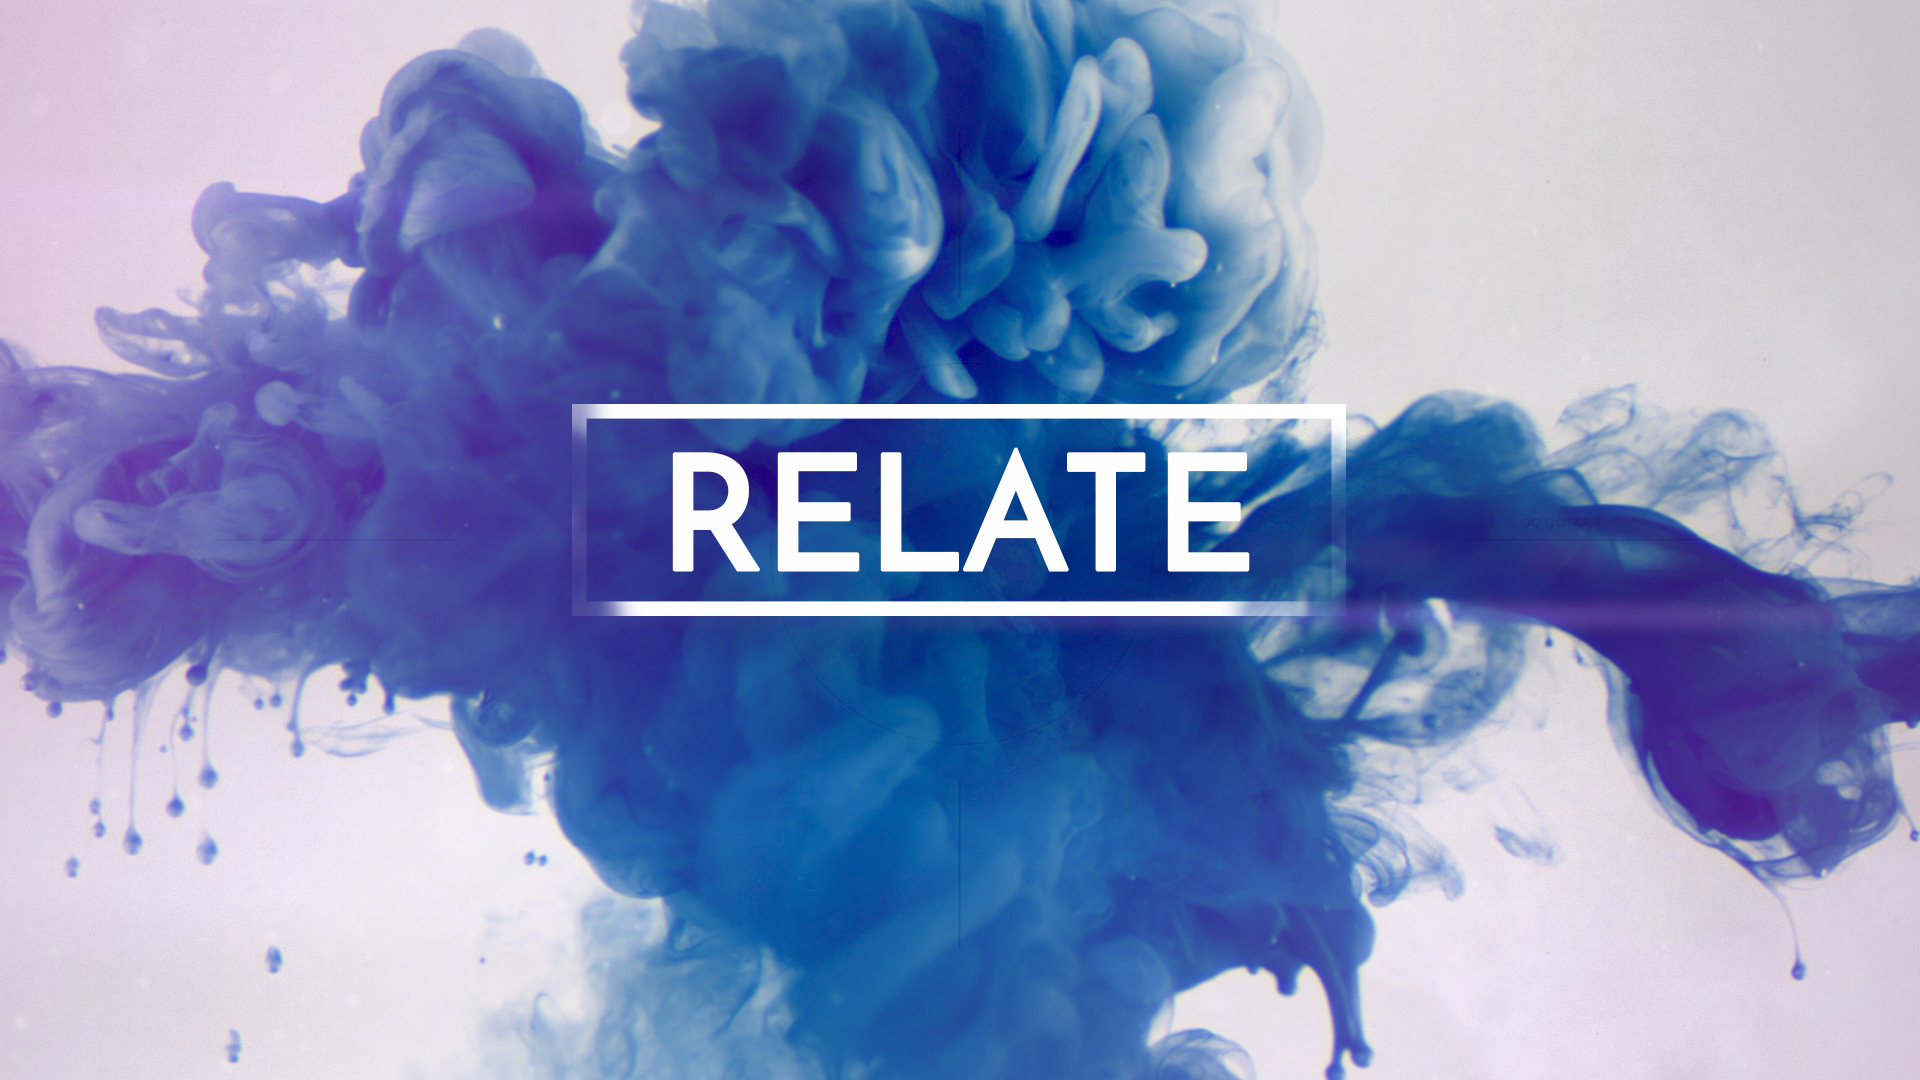 New Relate1920x1080 fixed-1.jpg